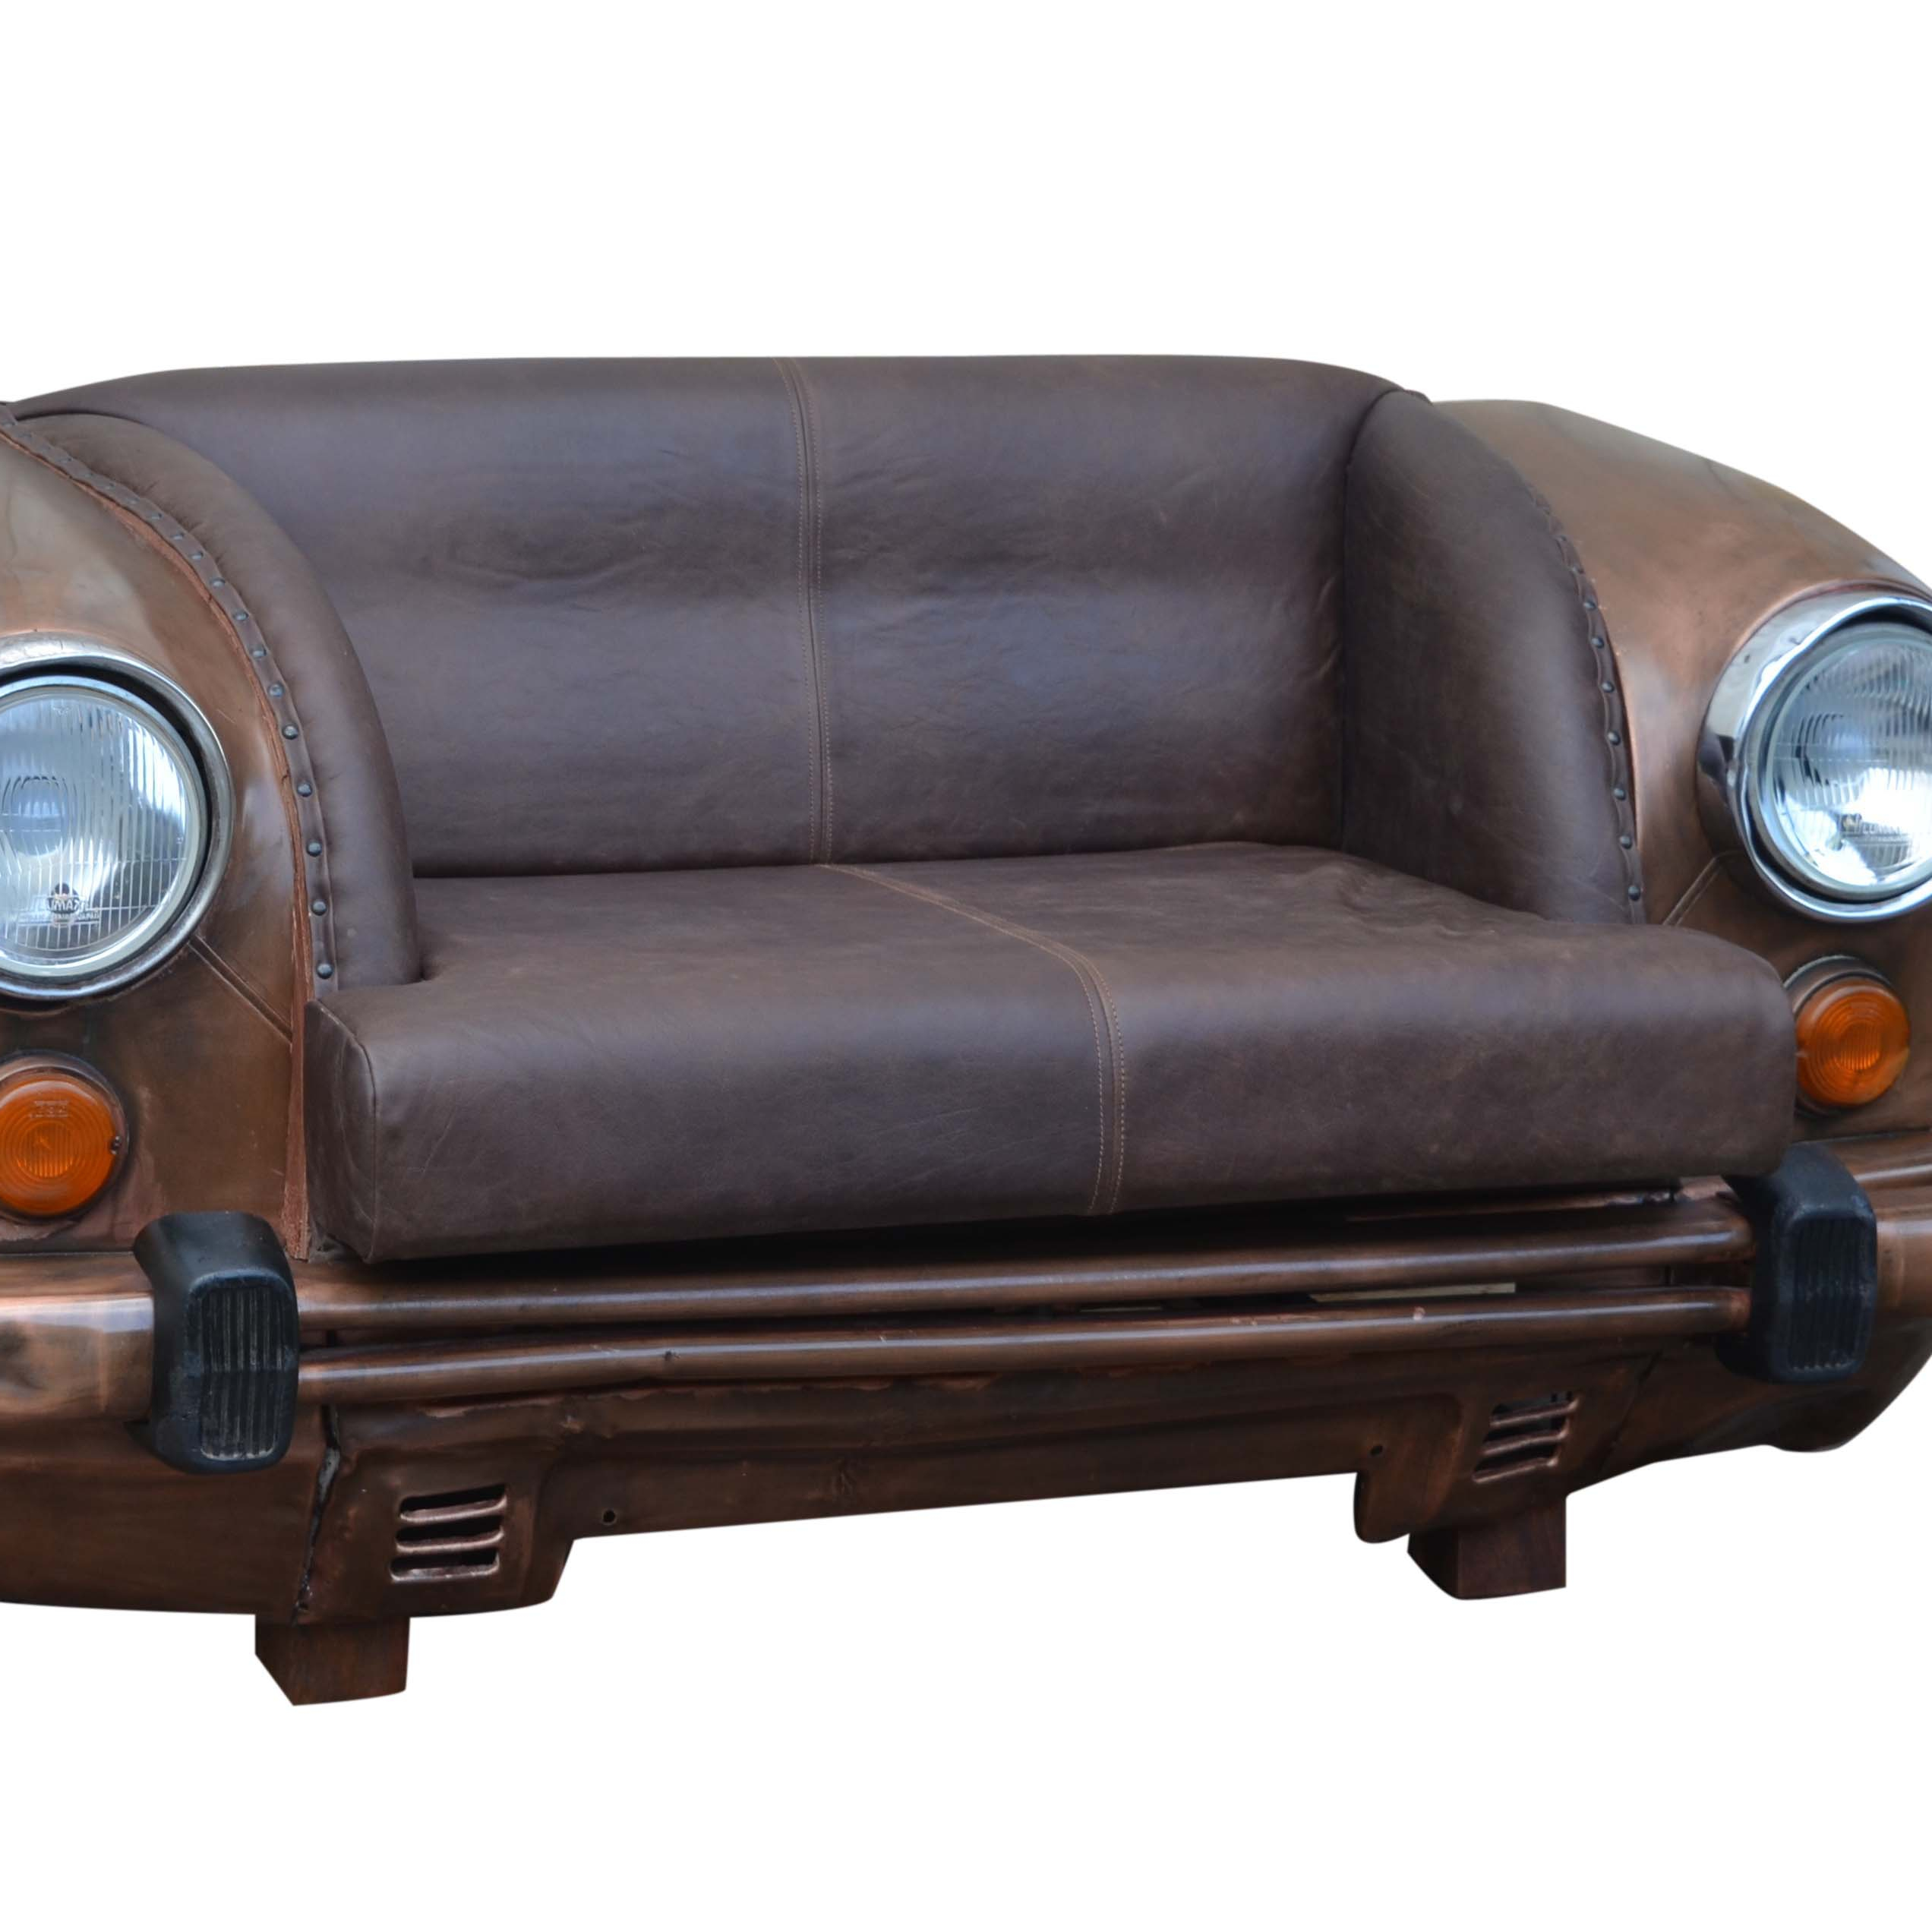 Car Sofa With Leather Seat And Round